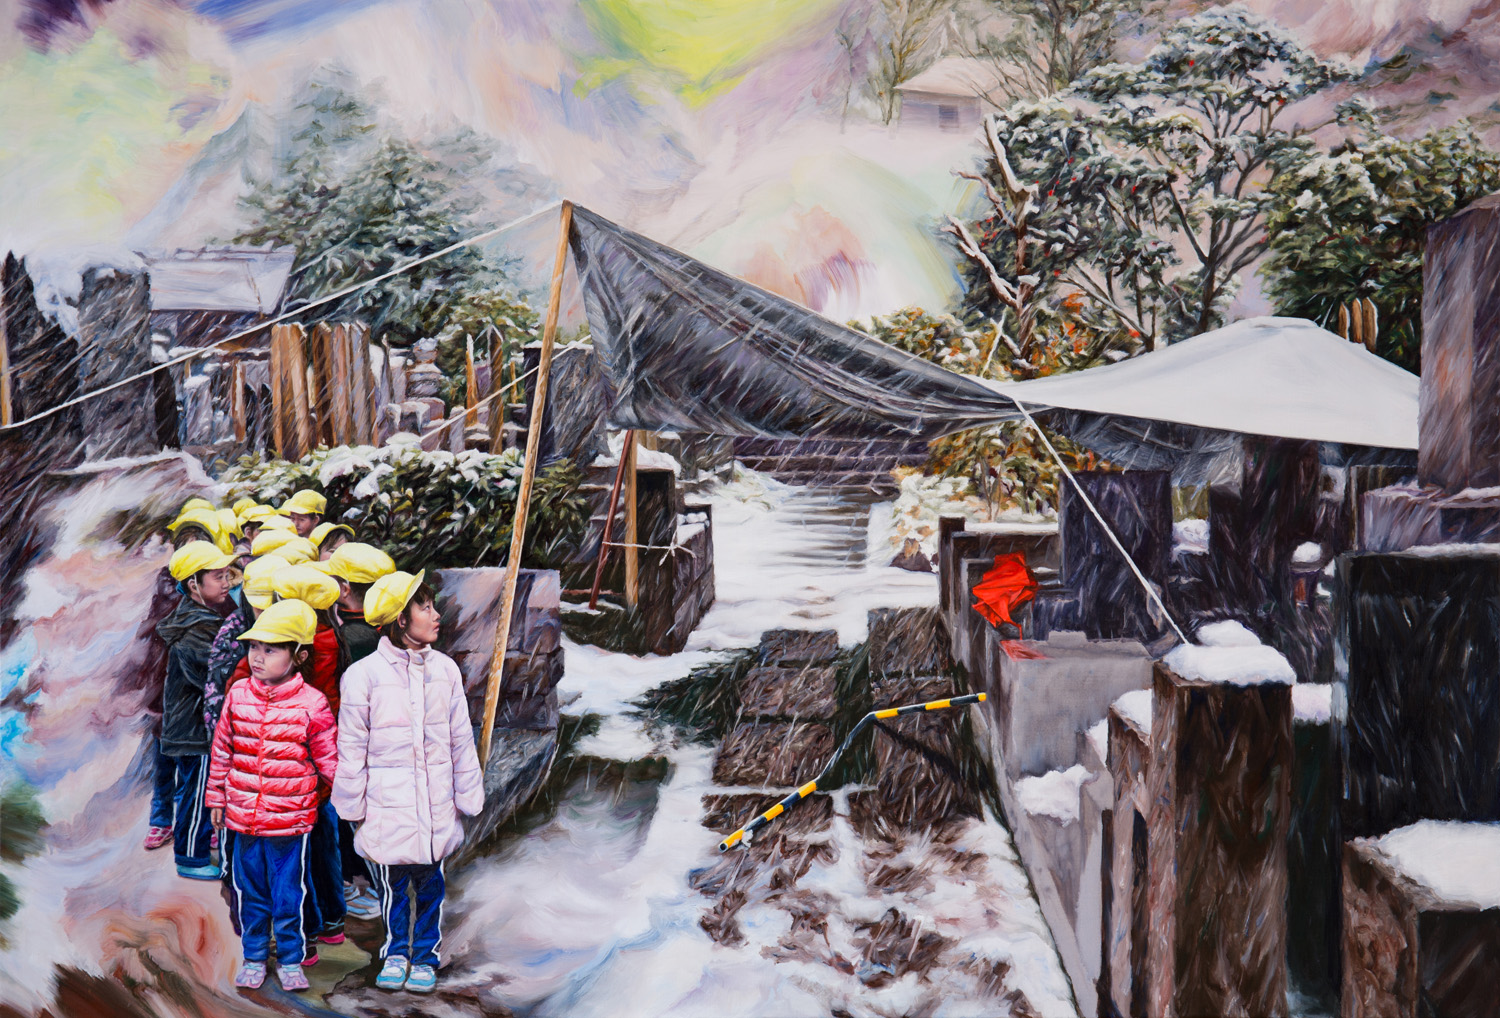 Kevin Chin wins the 2018 Albany Art Prize WA with the painting, Sheltered